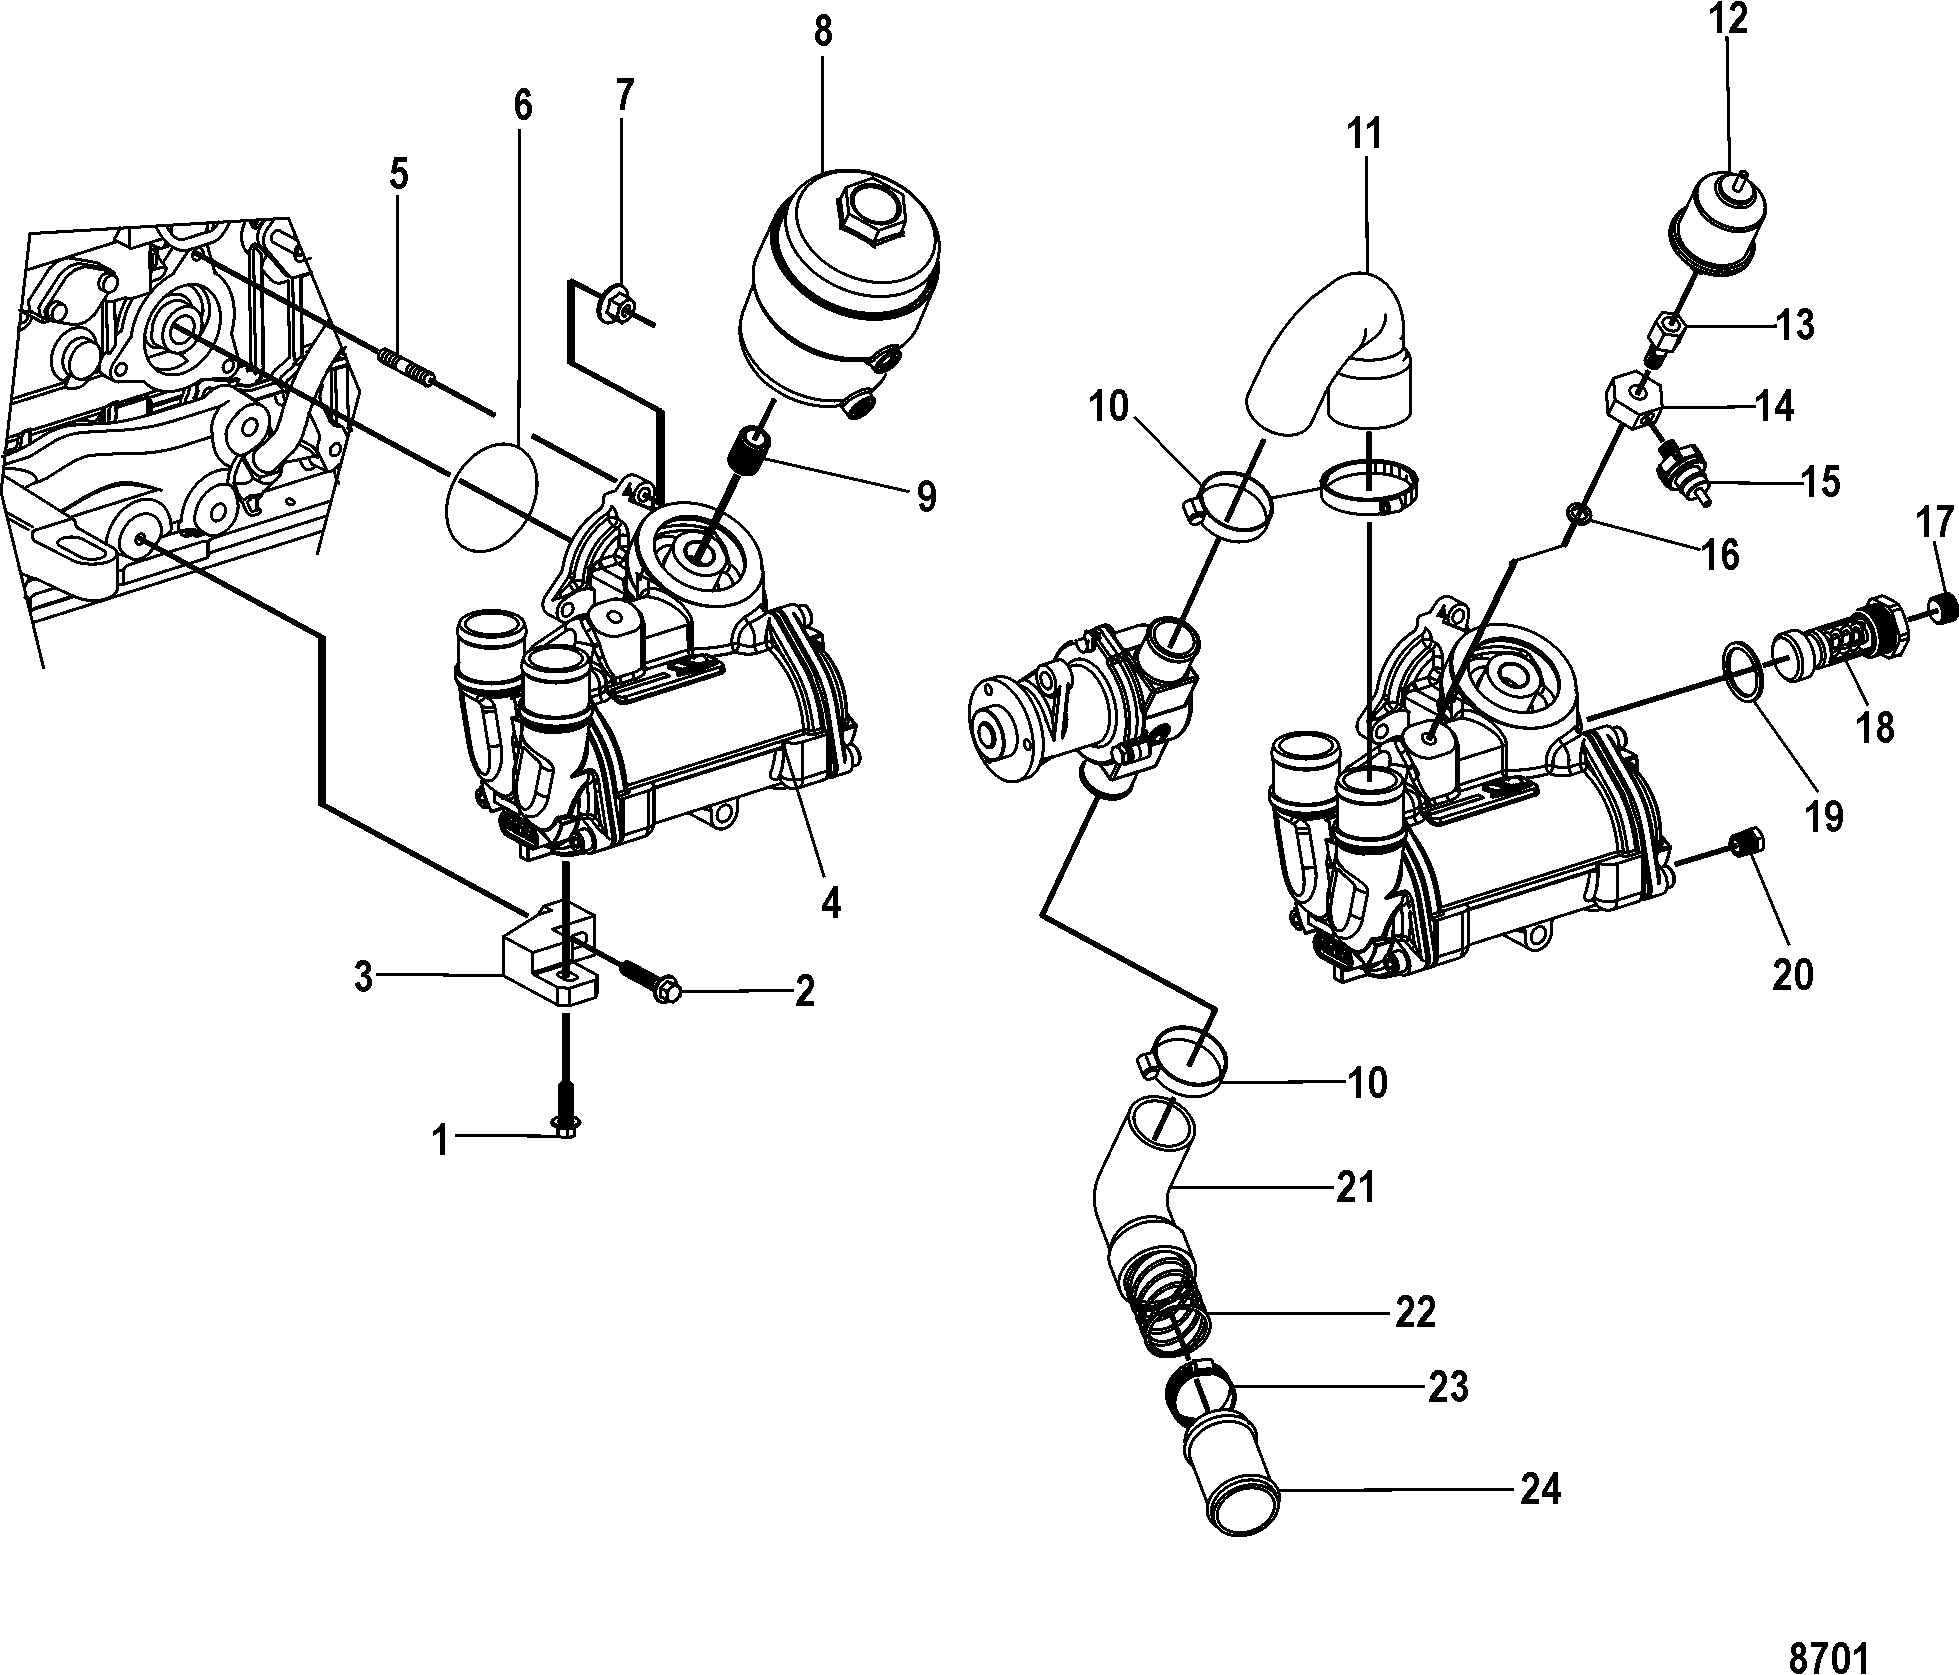 8 8 cummins engine diagram